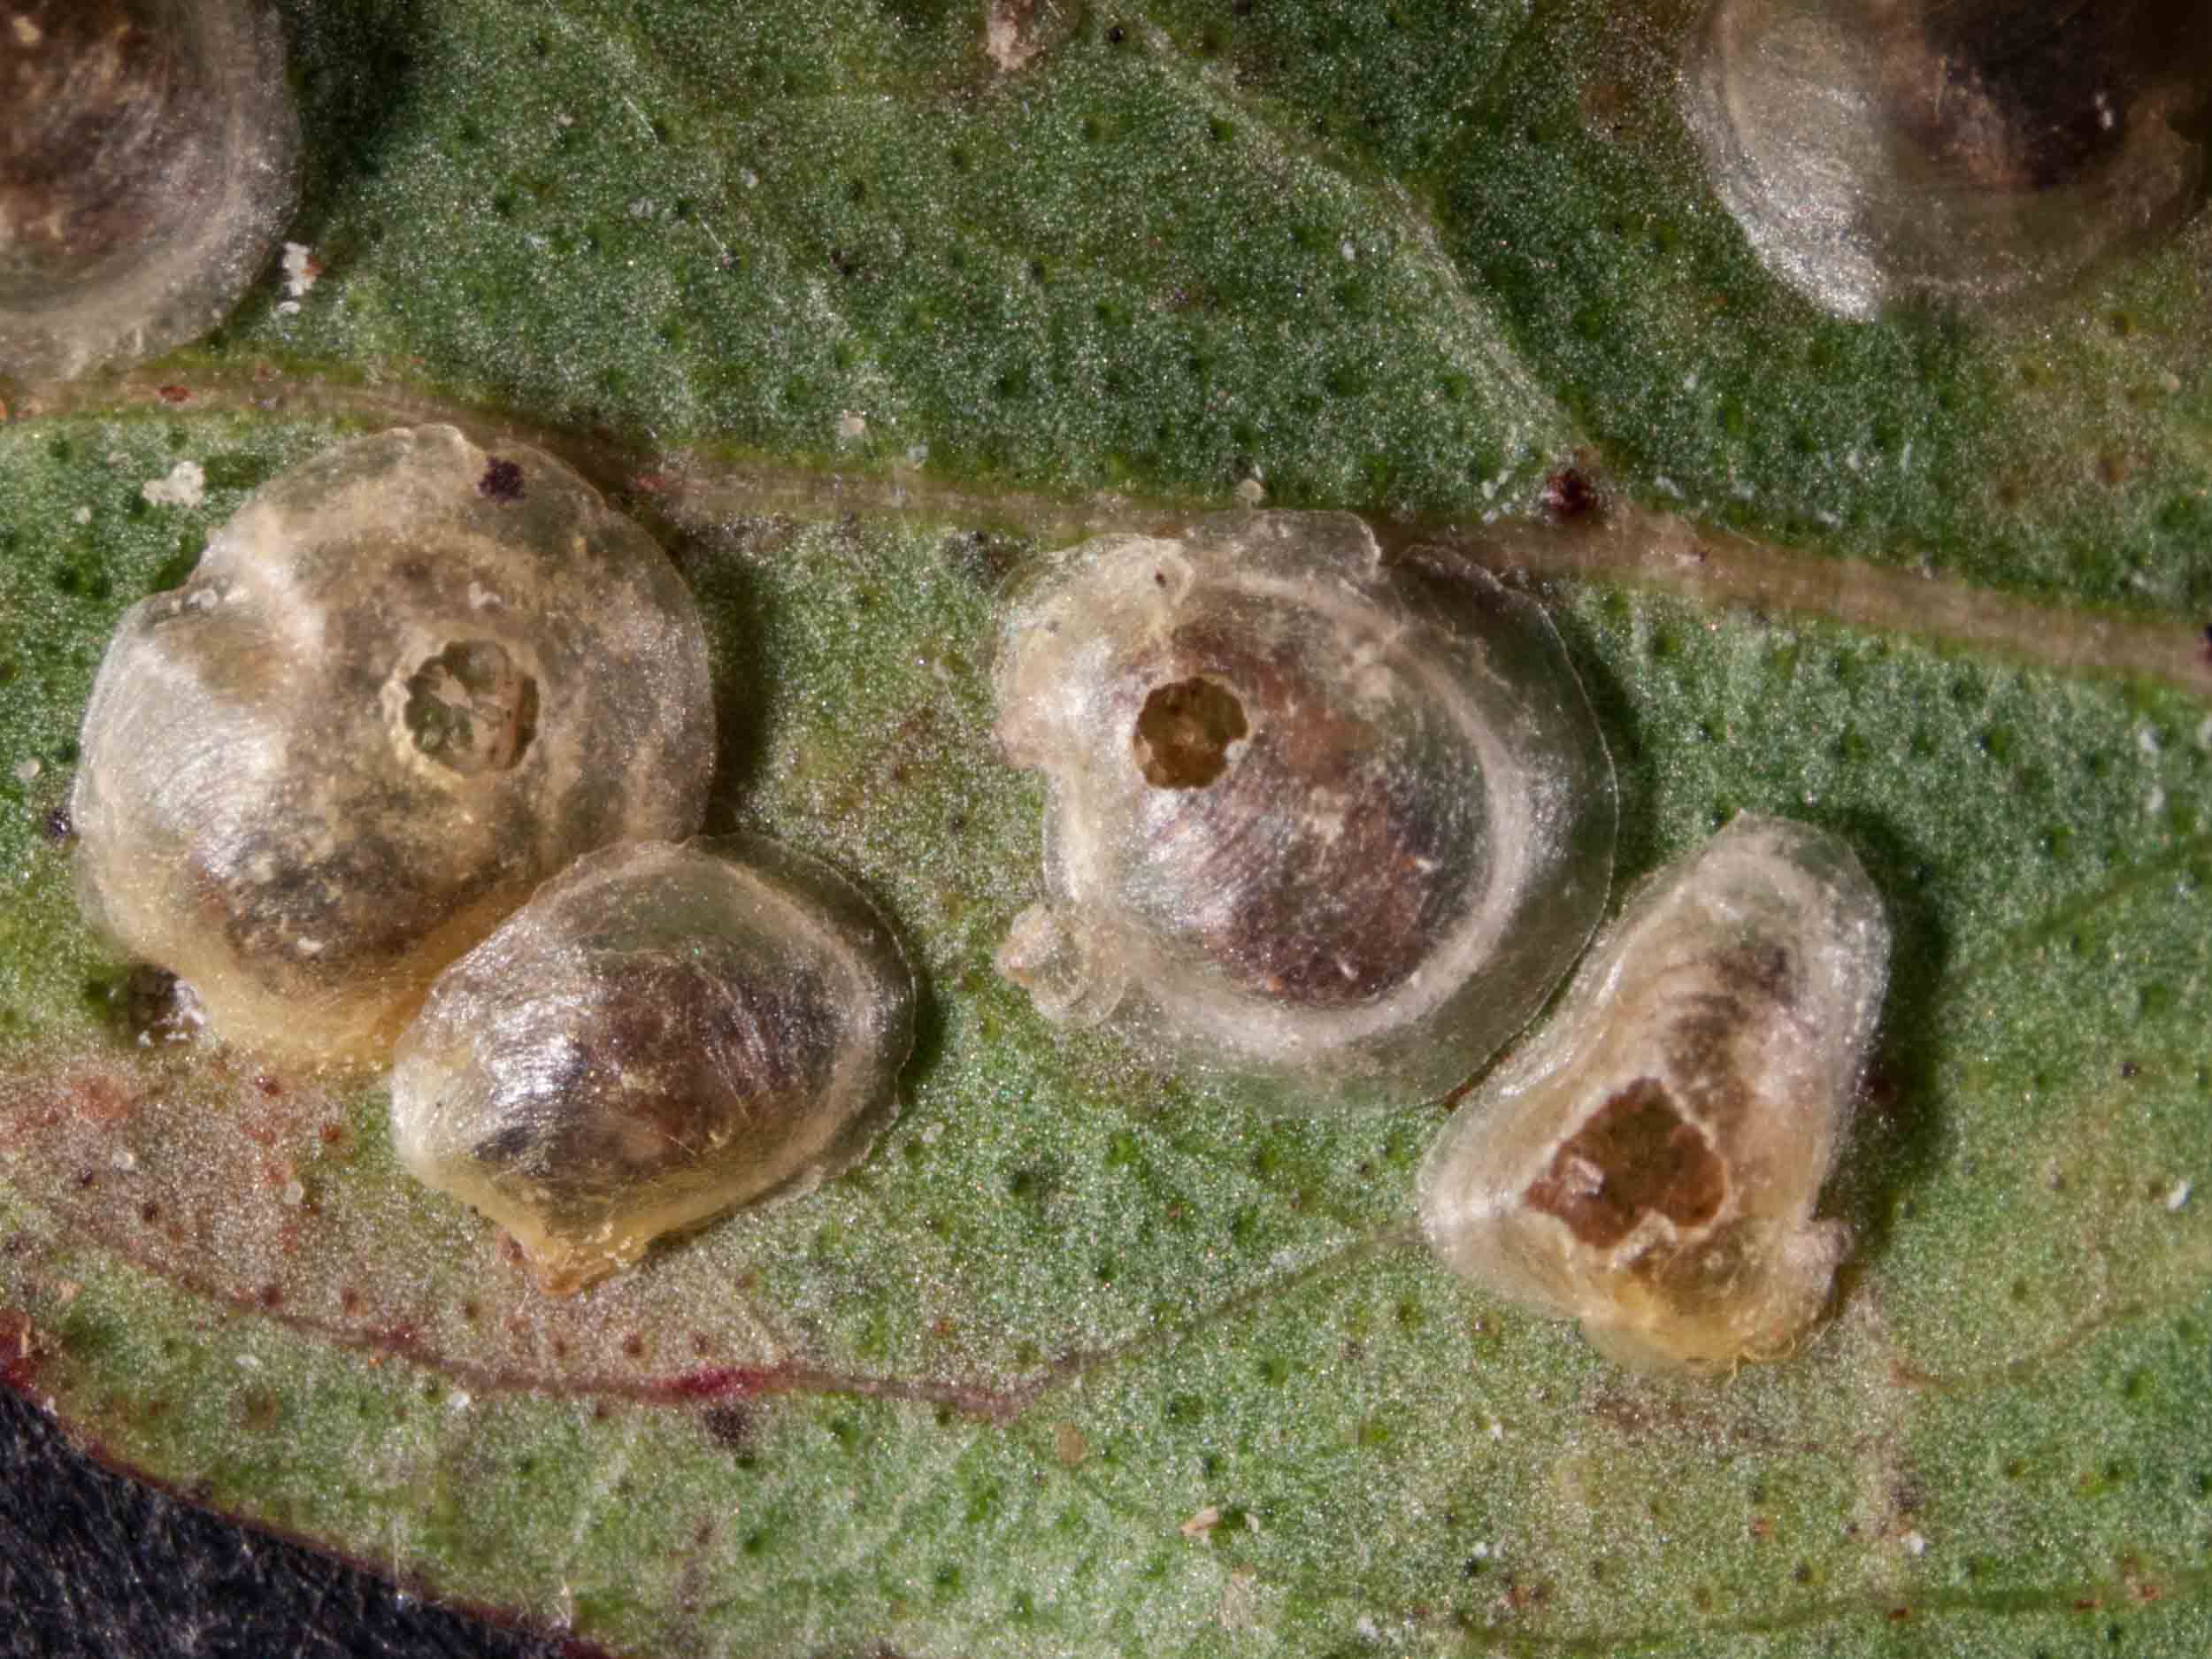 Hyalinaspsis  lerps with holes made by escaping wasps